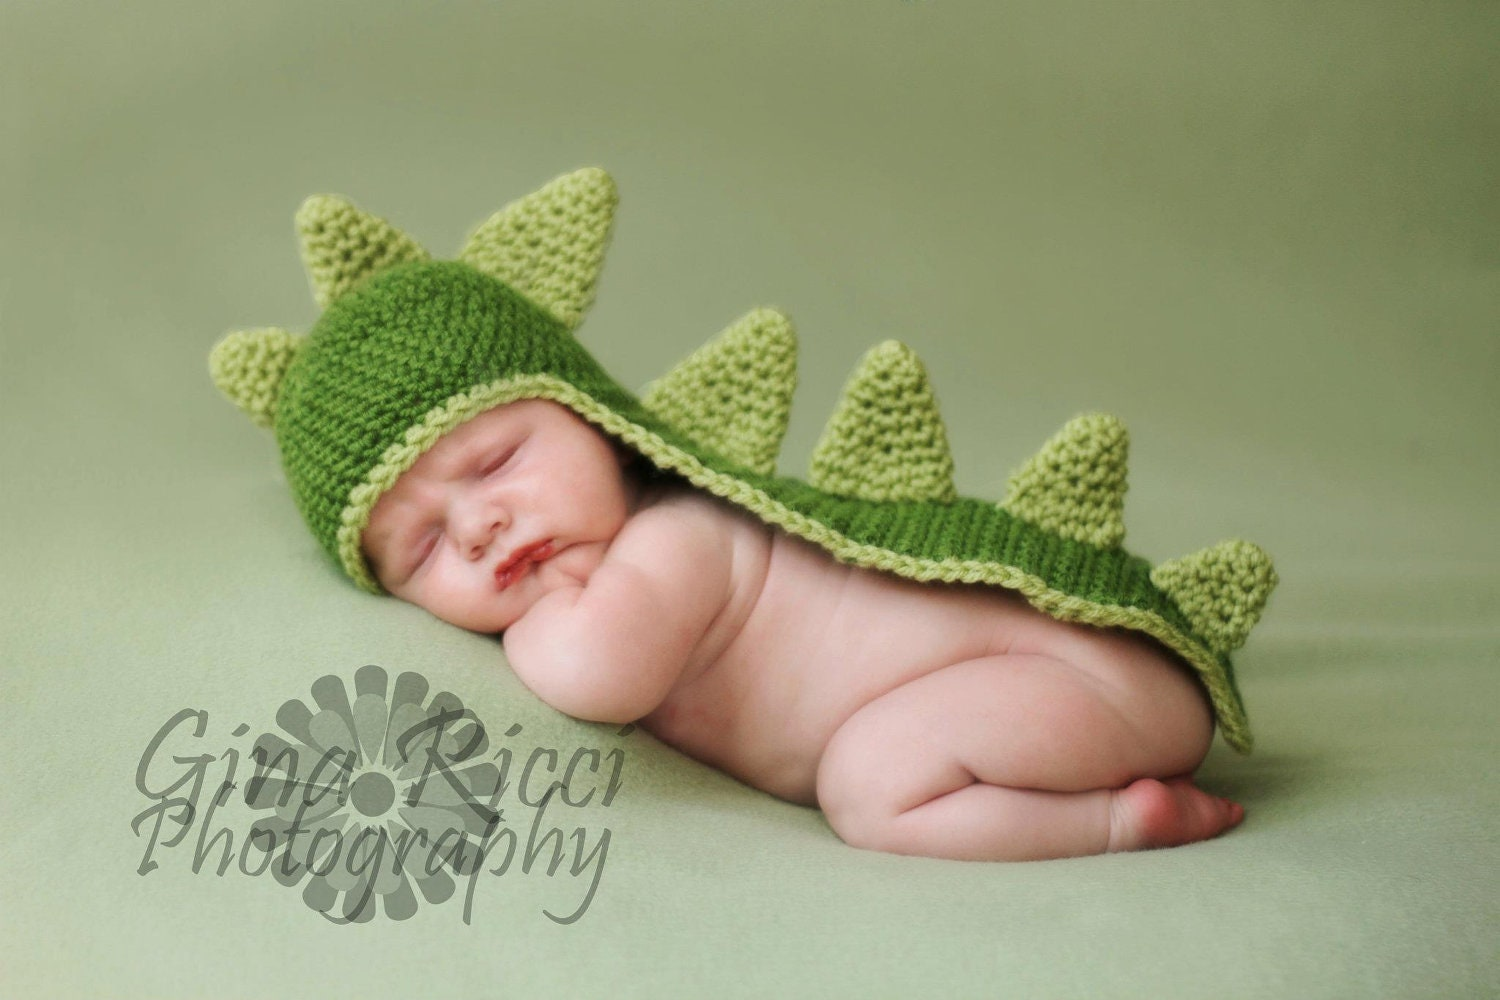 Crochet pattern for baby dinosaur hat dancox for dinosaur baby crochet pattern easy hat crochet pattern hat bankloansurffo Gallery